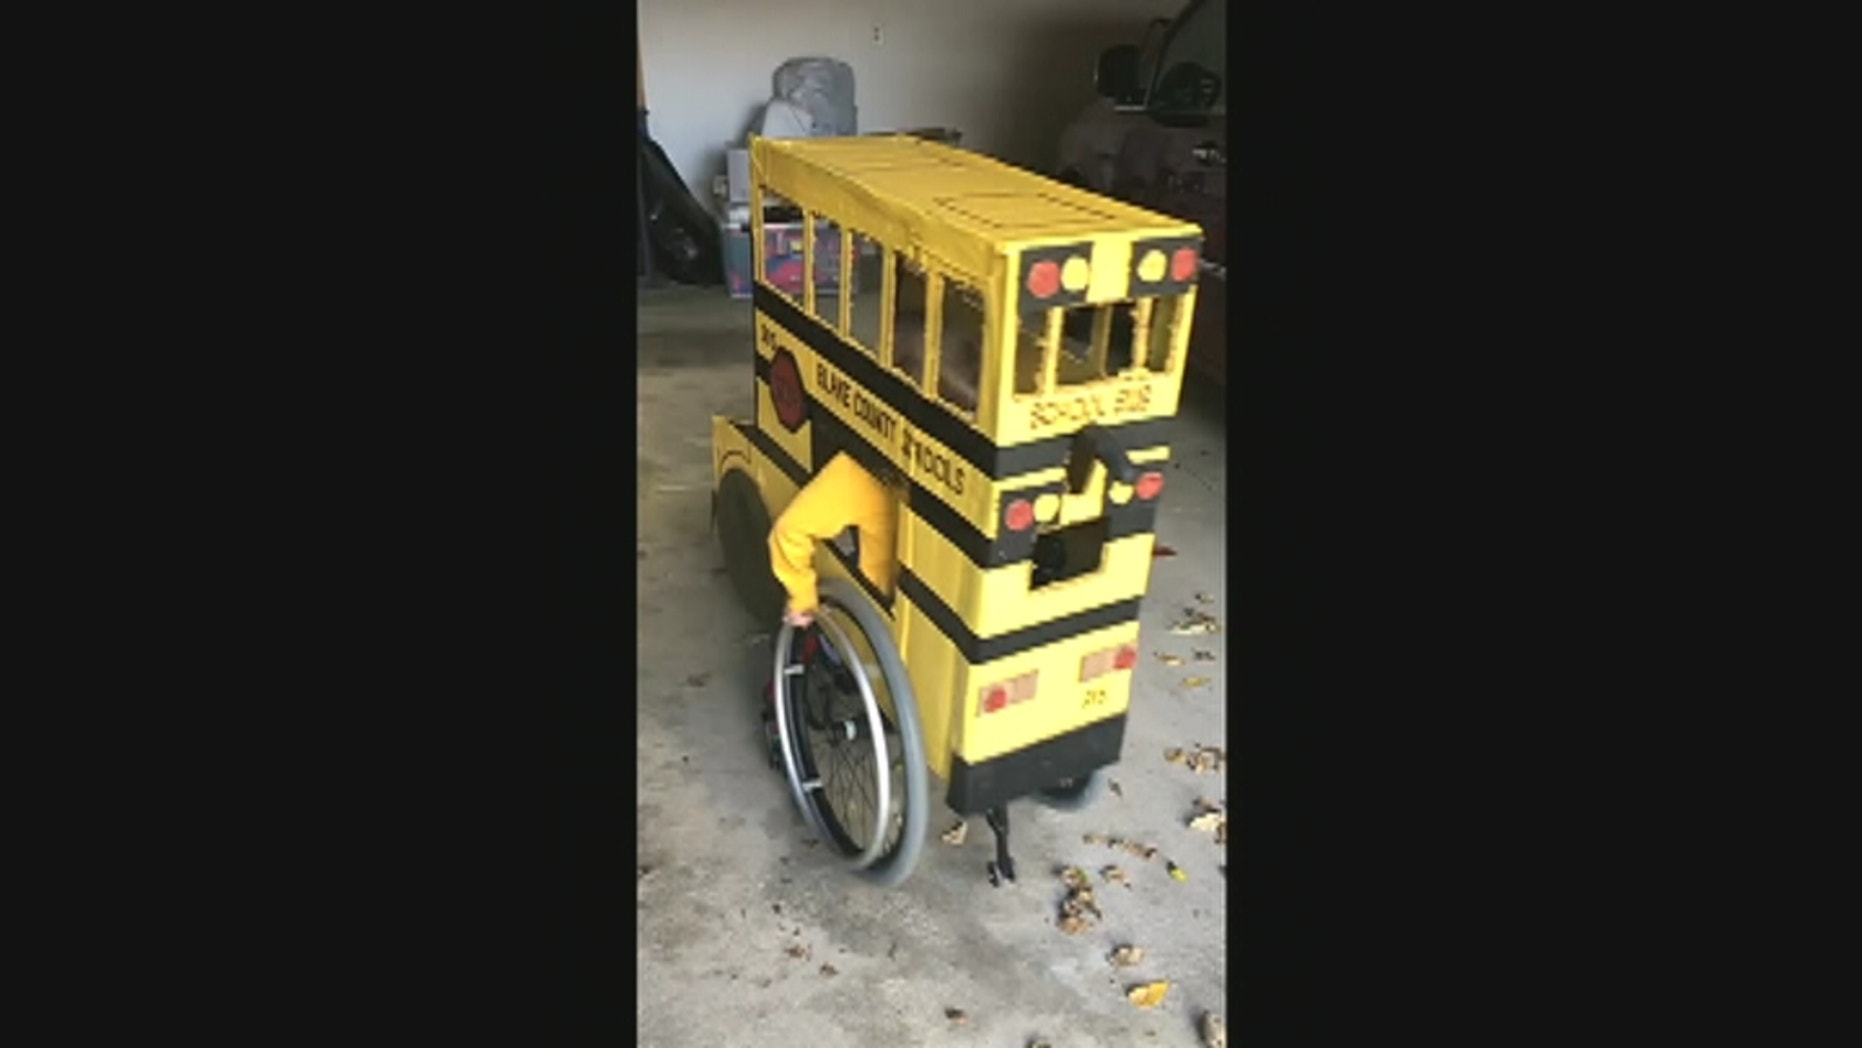 """Blake Mompher is pictured inside his """"Blake County Schools"""" bus costume."""